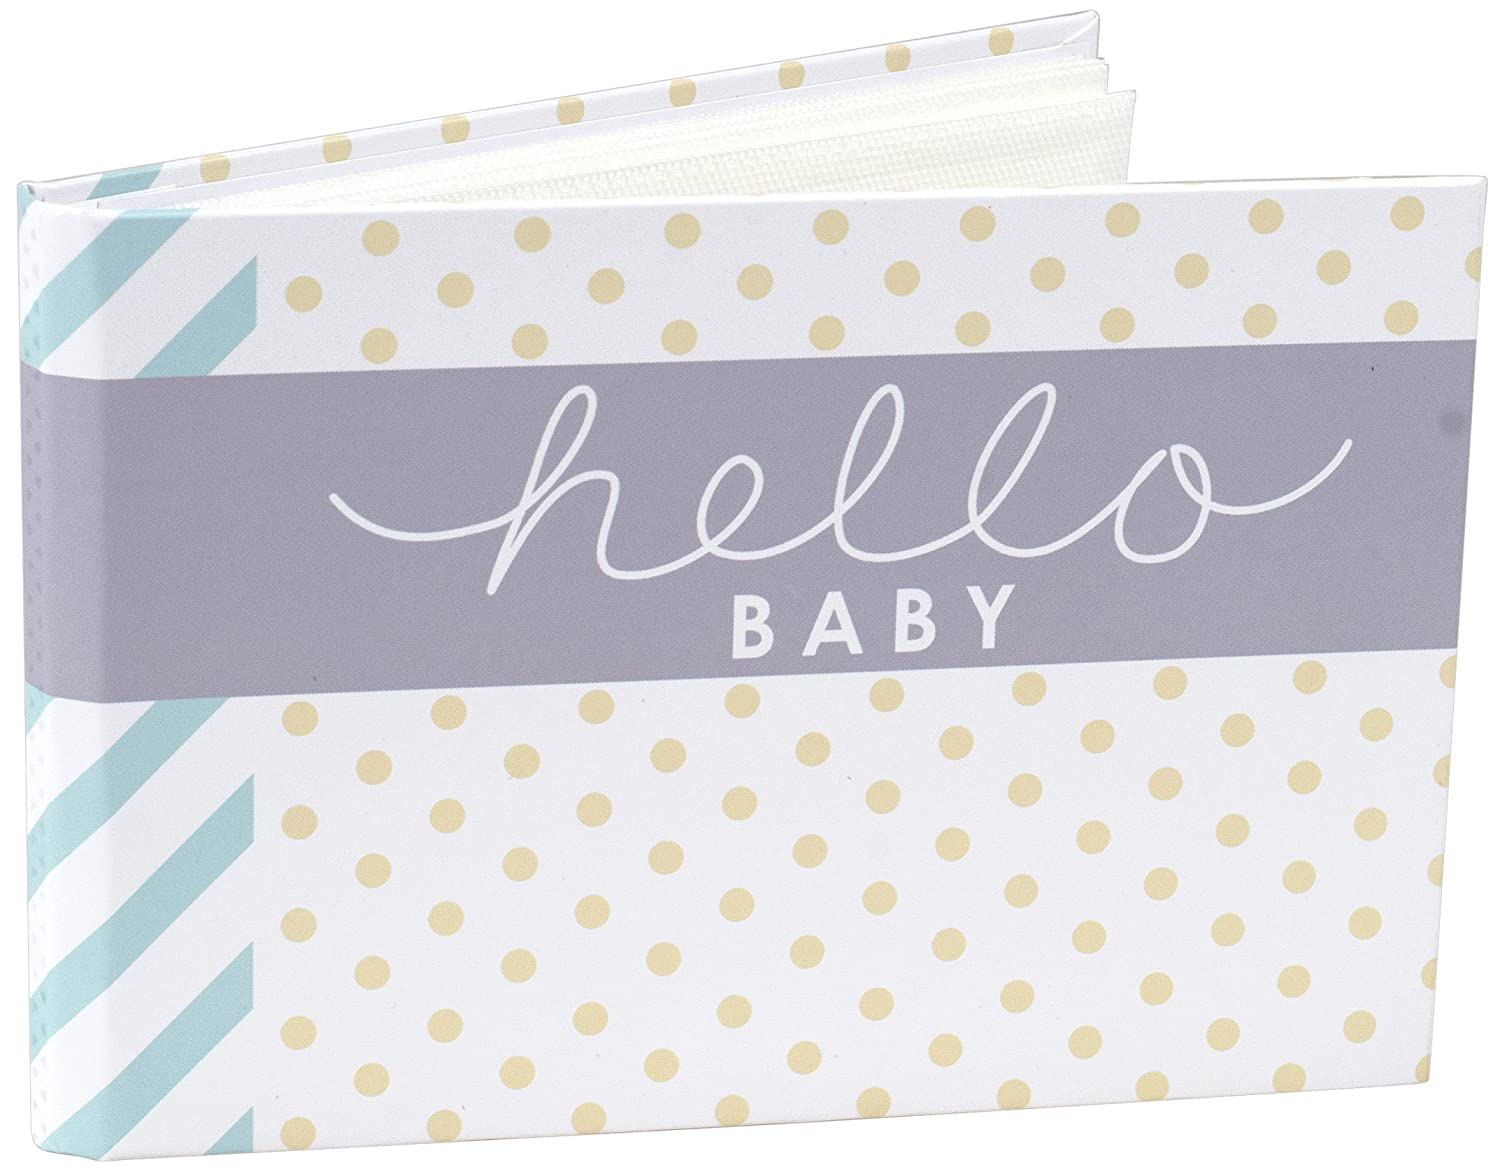 Malden International Designs Hello Baby Photo Album, 40-4x6, White 7080-16